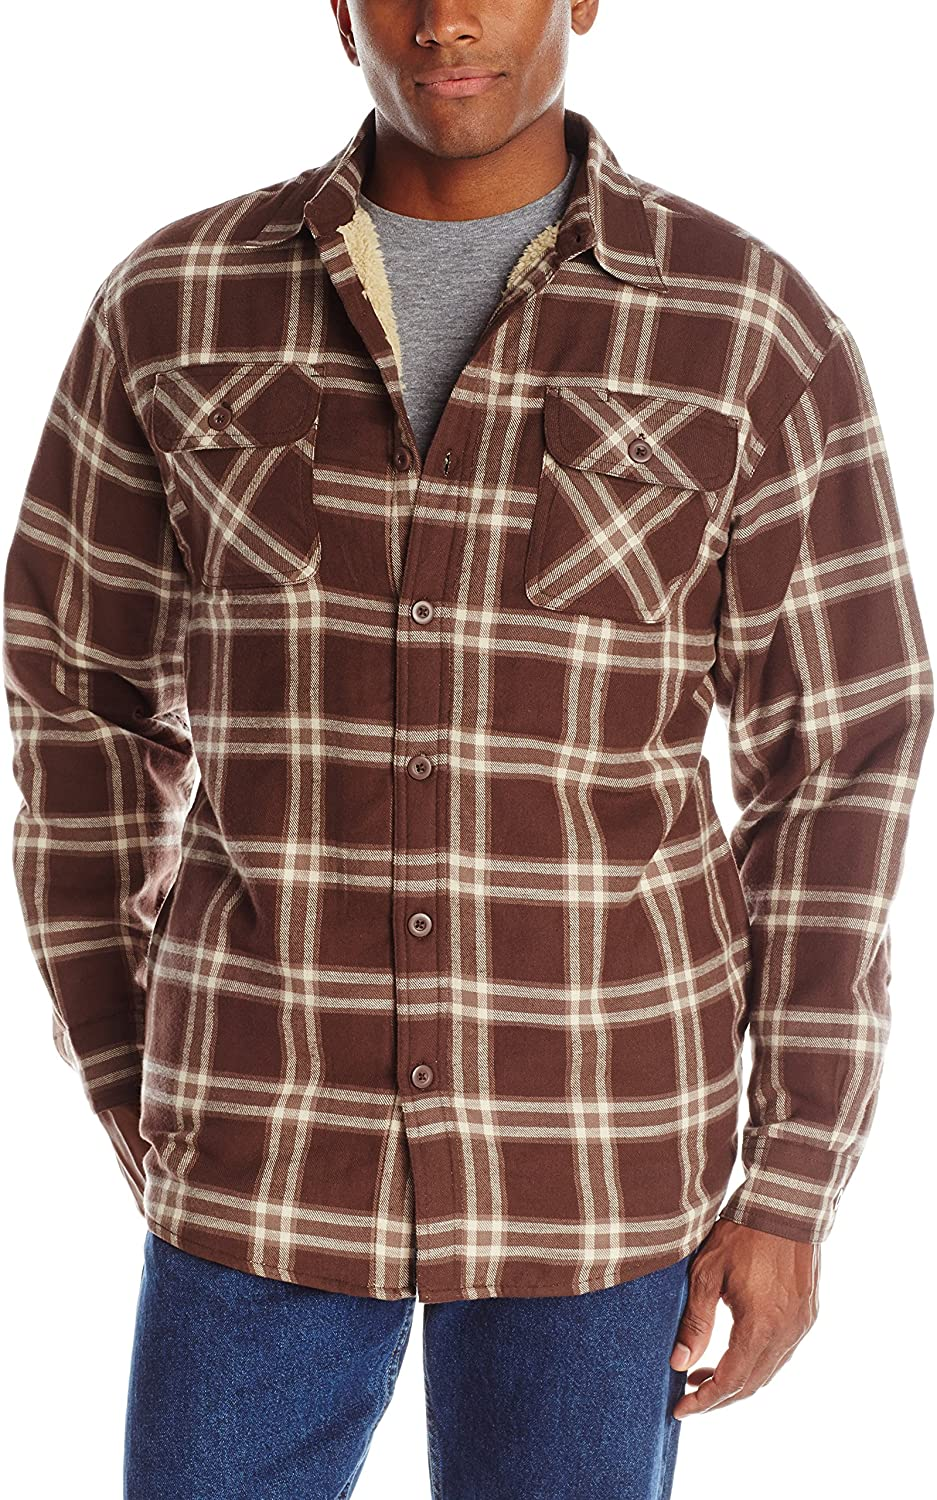 Review of Authentics Men's Long Sleeve Sherpa Lined Shirt Jacket